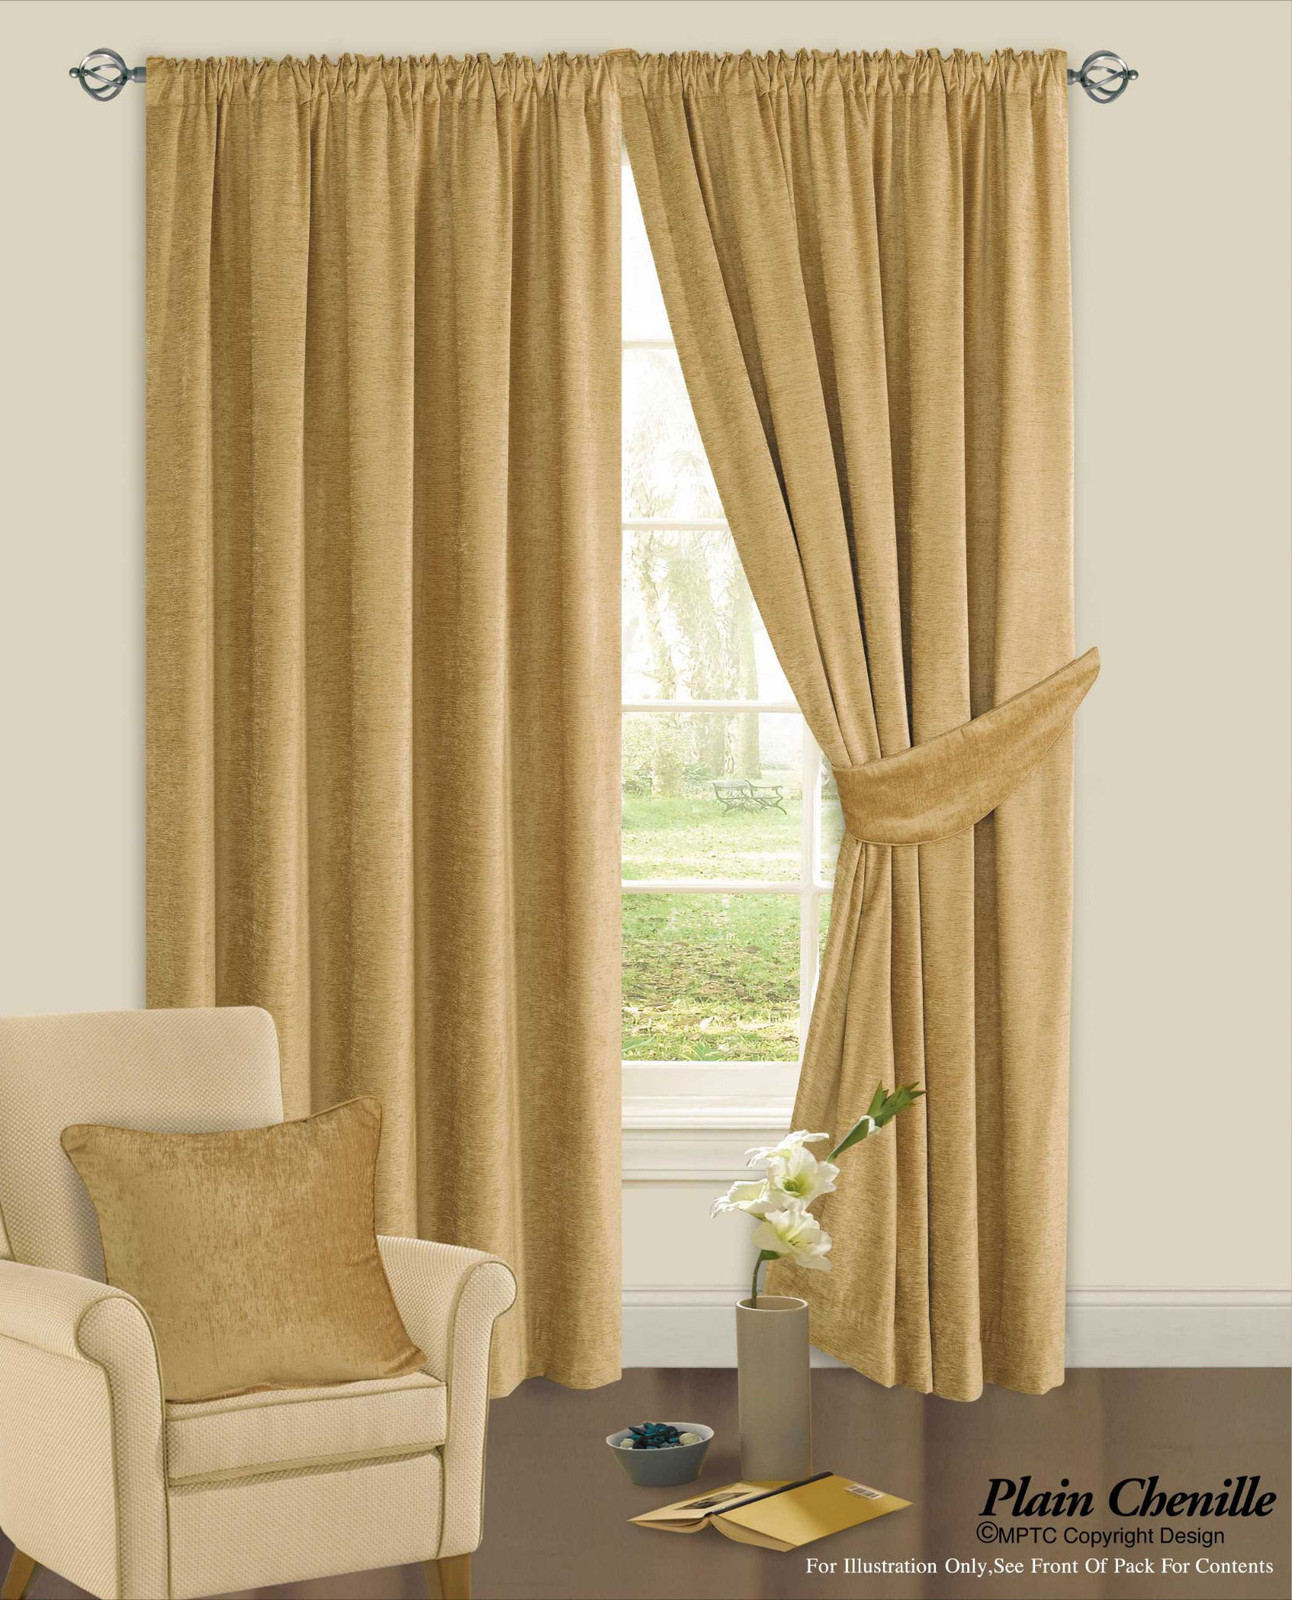 Luxury Chenille Ready Made Curtains from Century Textiles